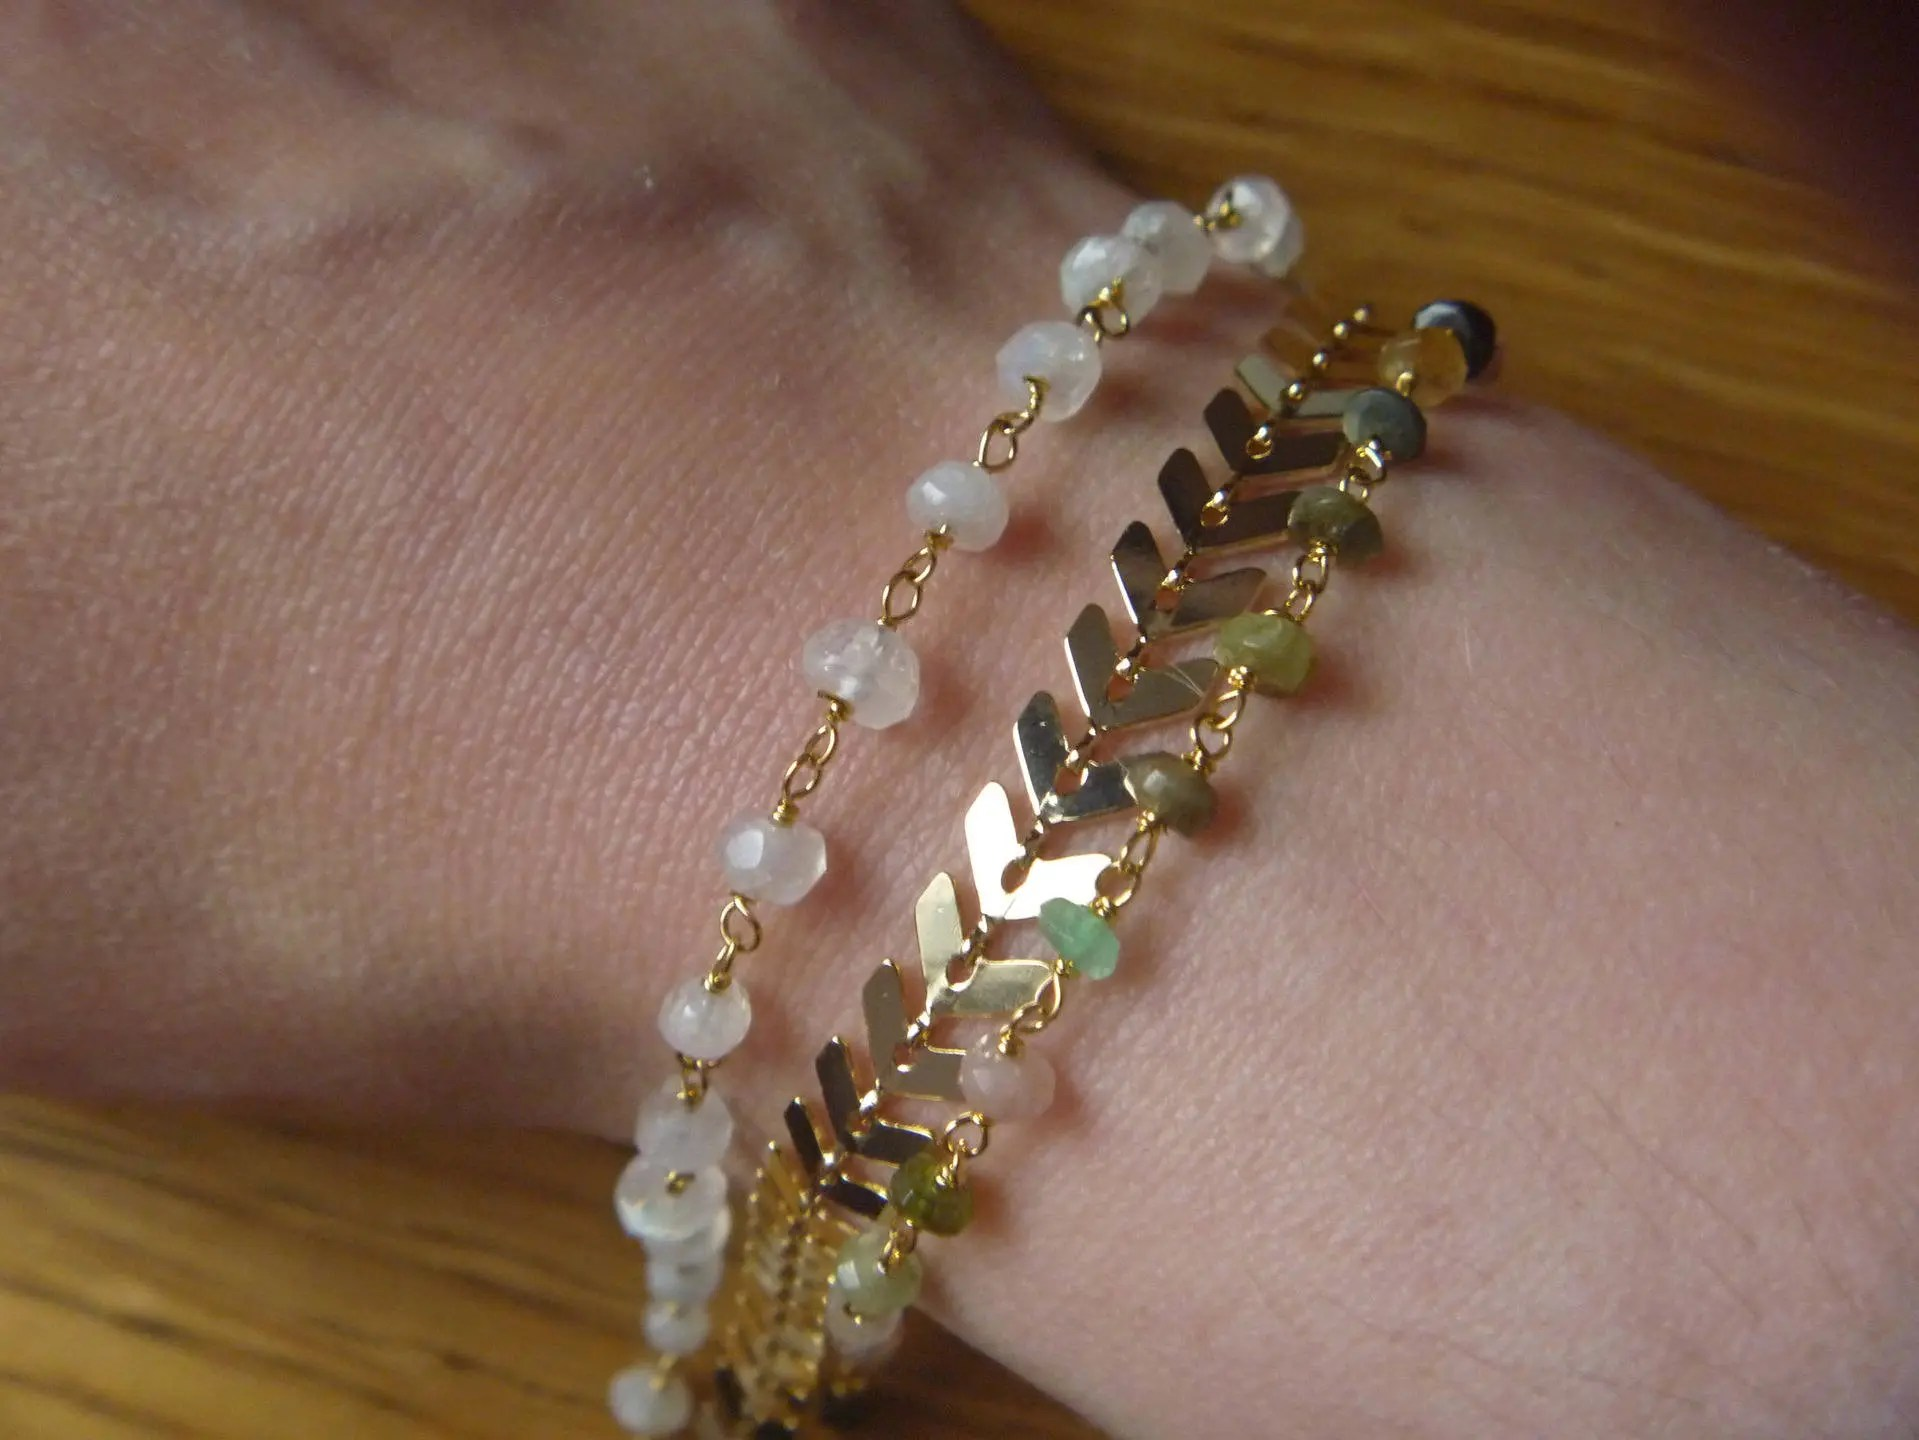 Spiritual Bead Bracelet Meaning - Usefulresults